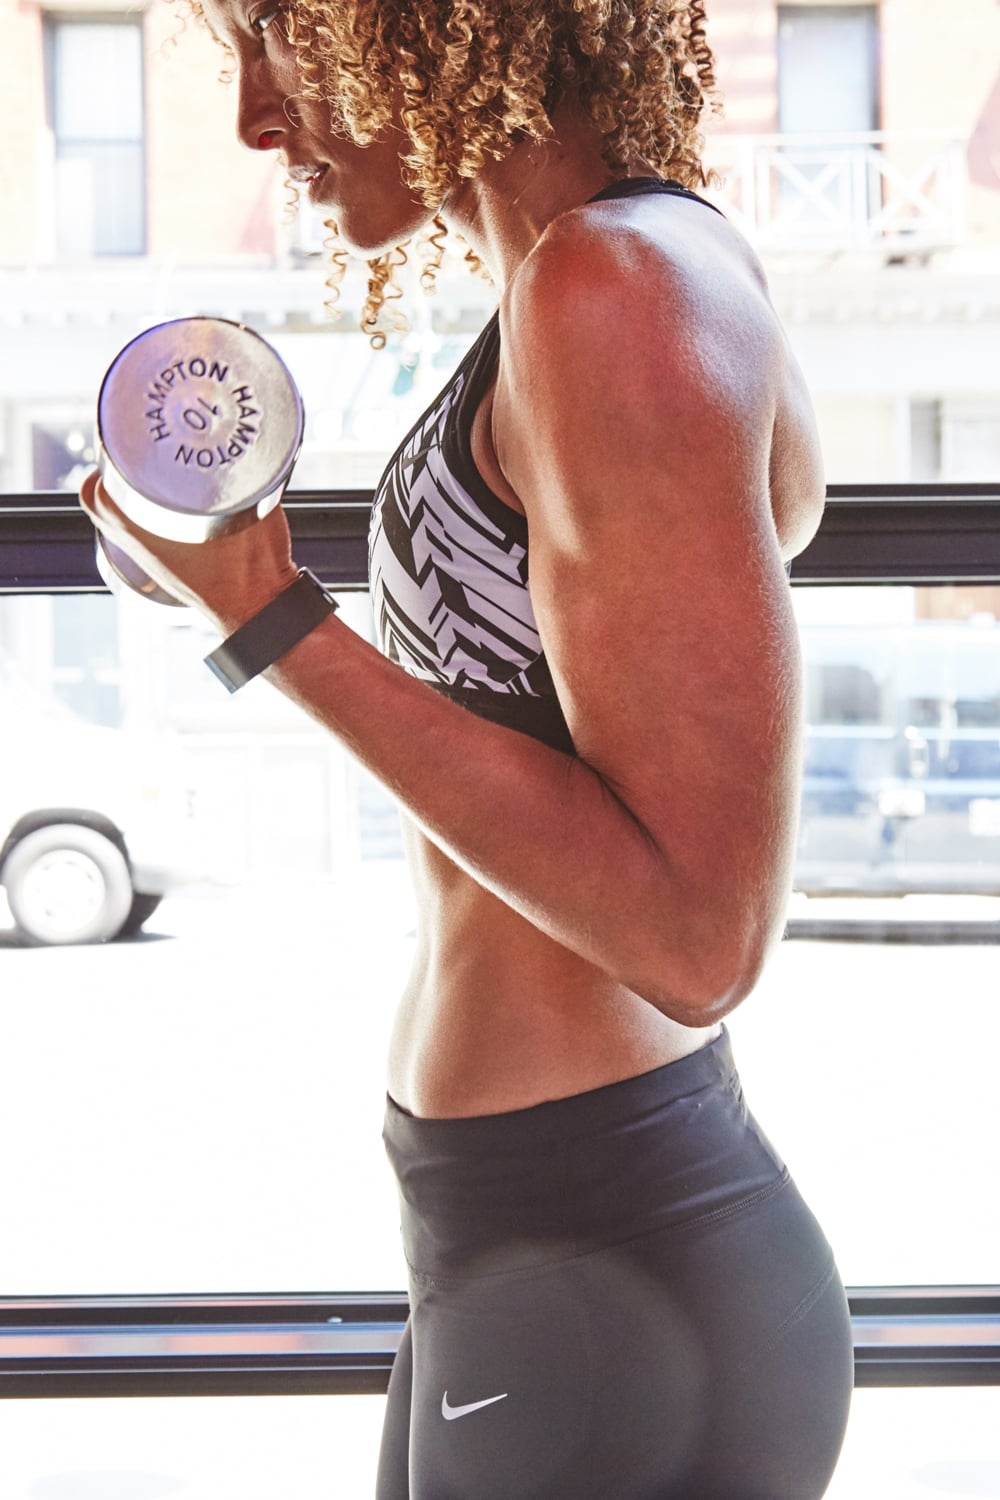 PopsugarFitnessHealthy LivingHow Fitness Studios Affect GymsHow the Rise of Boutique Fitness Is Affecting the Business of Gyms February 2, 2016 by Michele Foley6.2K Shares Chat with us on Facebook Messenger. Learn what's trending across POPSUGAR.Working out used to be so straightforward: find a gym that's close to you, get in, get out, and get on with your day. Not so much anymore. This year saw an explosive rise in both boutique fitness and class-booking services such as ClassPass and FitReserve — a rise that many speculate is eating away at the bottom line of traditional big-box gyms. Image Source: POPSUGAR Photography / Benjamin StoneI, myself, am a gym dissenter — a fact that many of my friends find odd since I make a living as a fitness editor, and even outside of my job, I love to work out. Still, I haven't set foot in a traditional gym since 2014. Endless rows of top-of-the-line treadmills and fancy eucalyptus towel service still can't beat the feeling I get from working out at smaller studios. Am - 웹